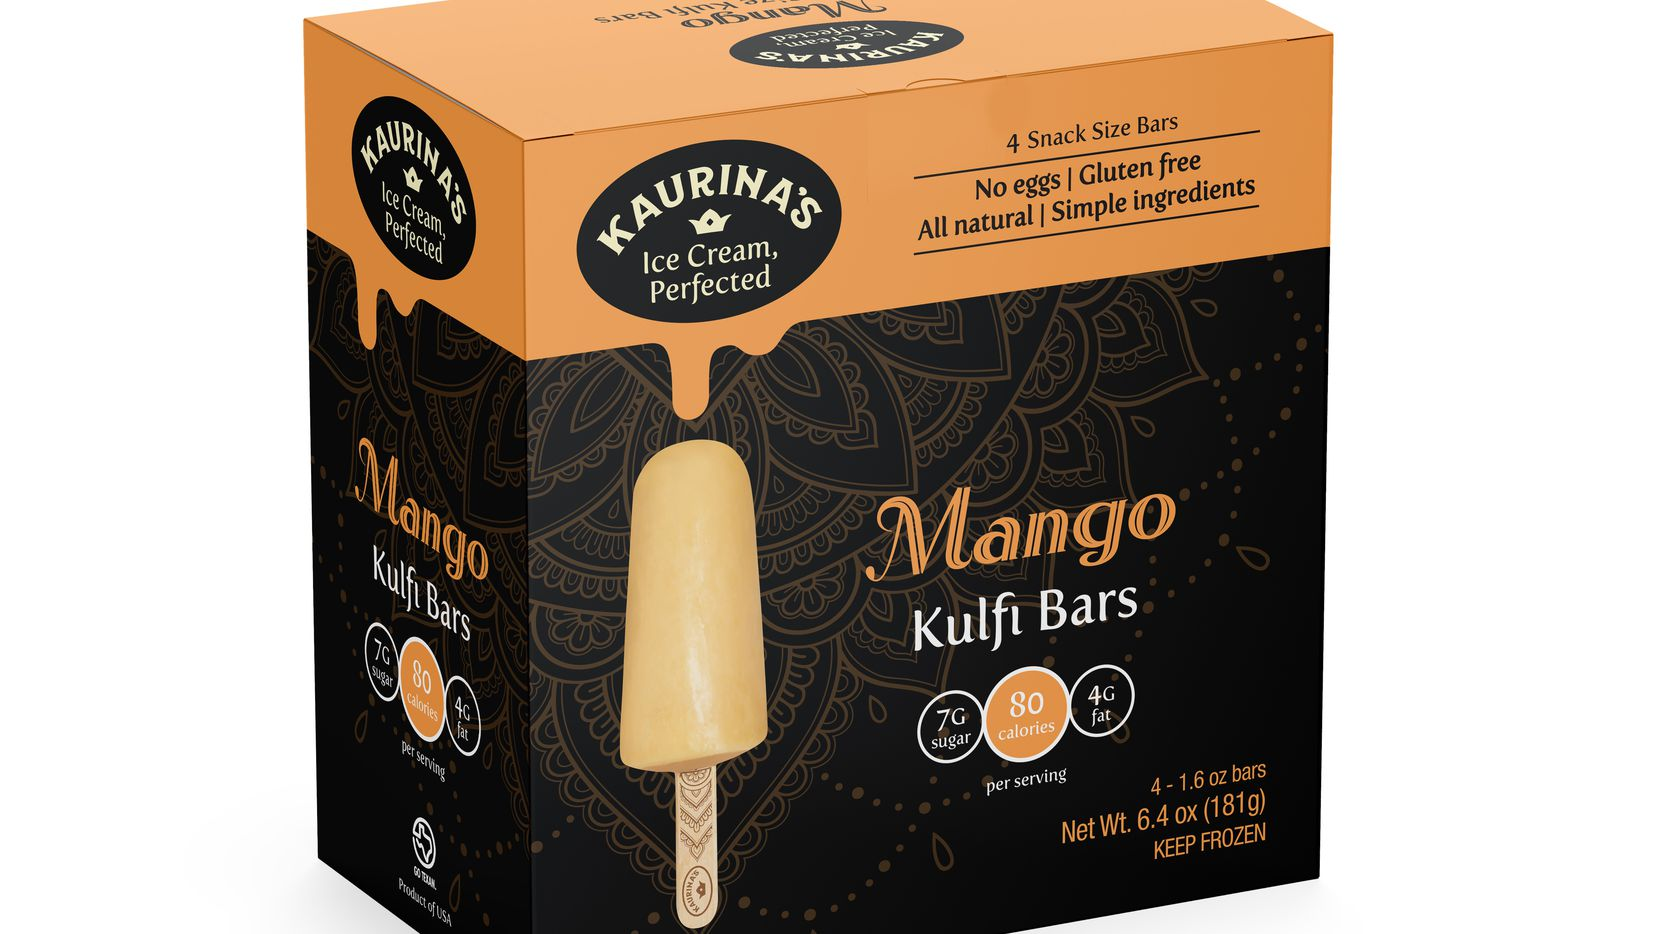 Kaurina's Kulfi is a Dallas-based ice cream company that just launched in Whole Foods.